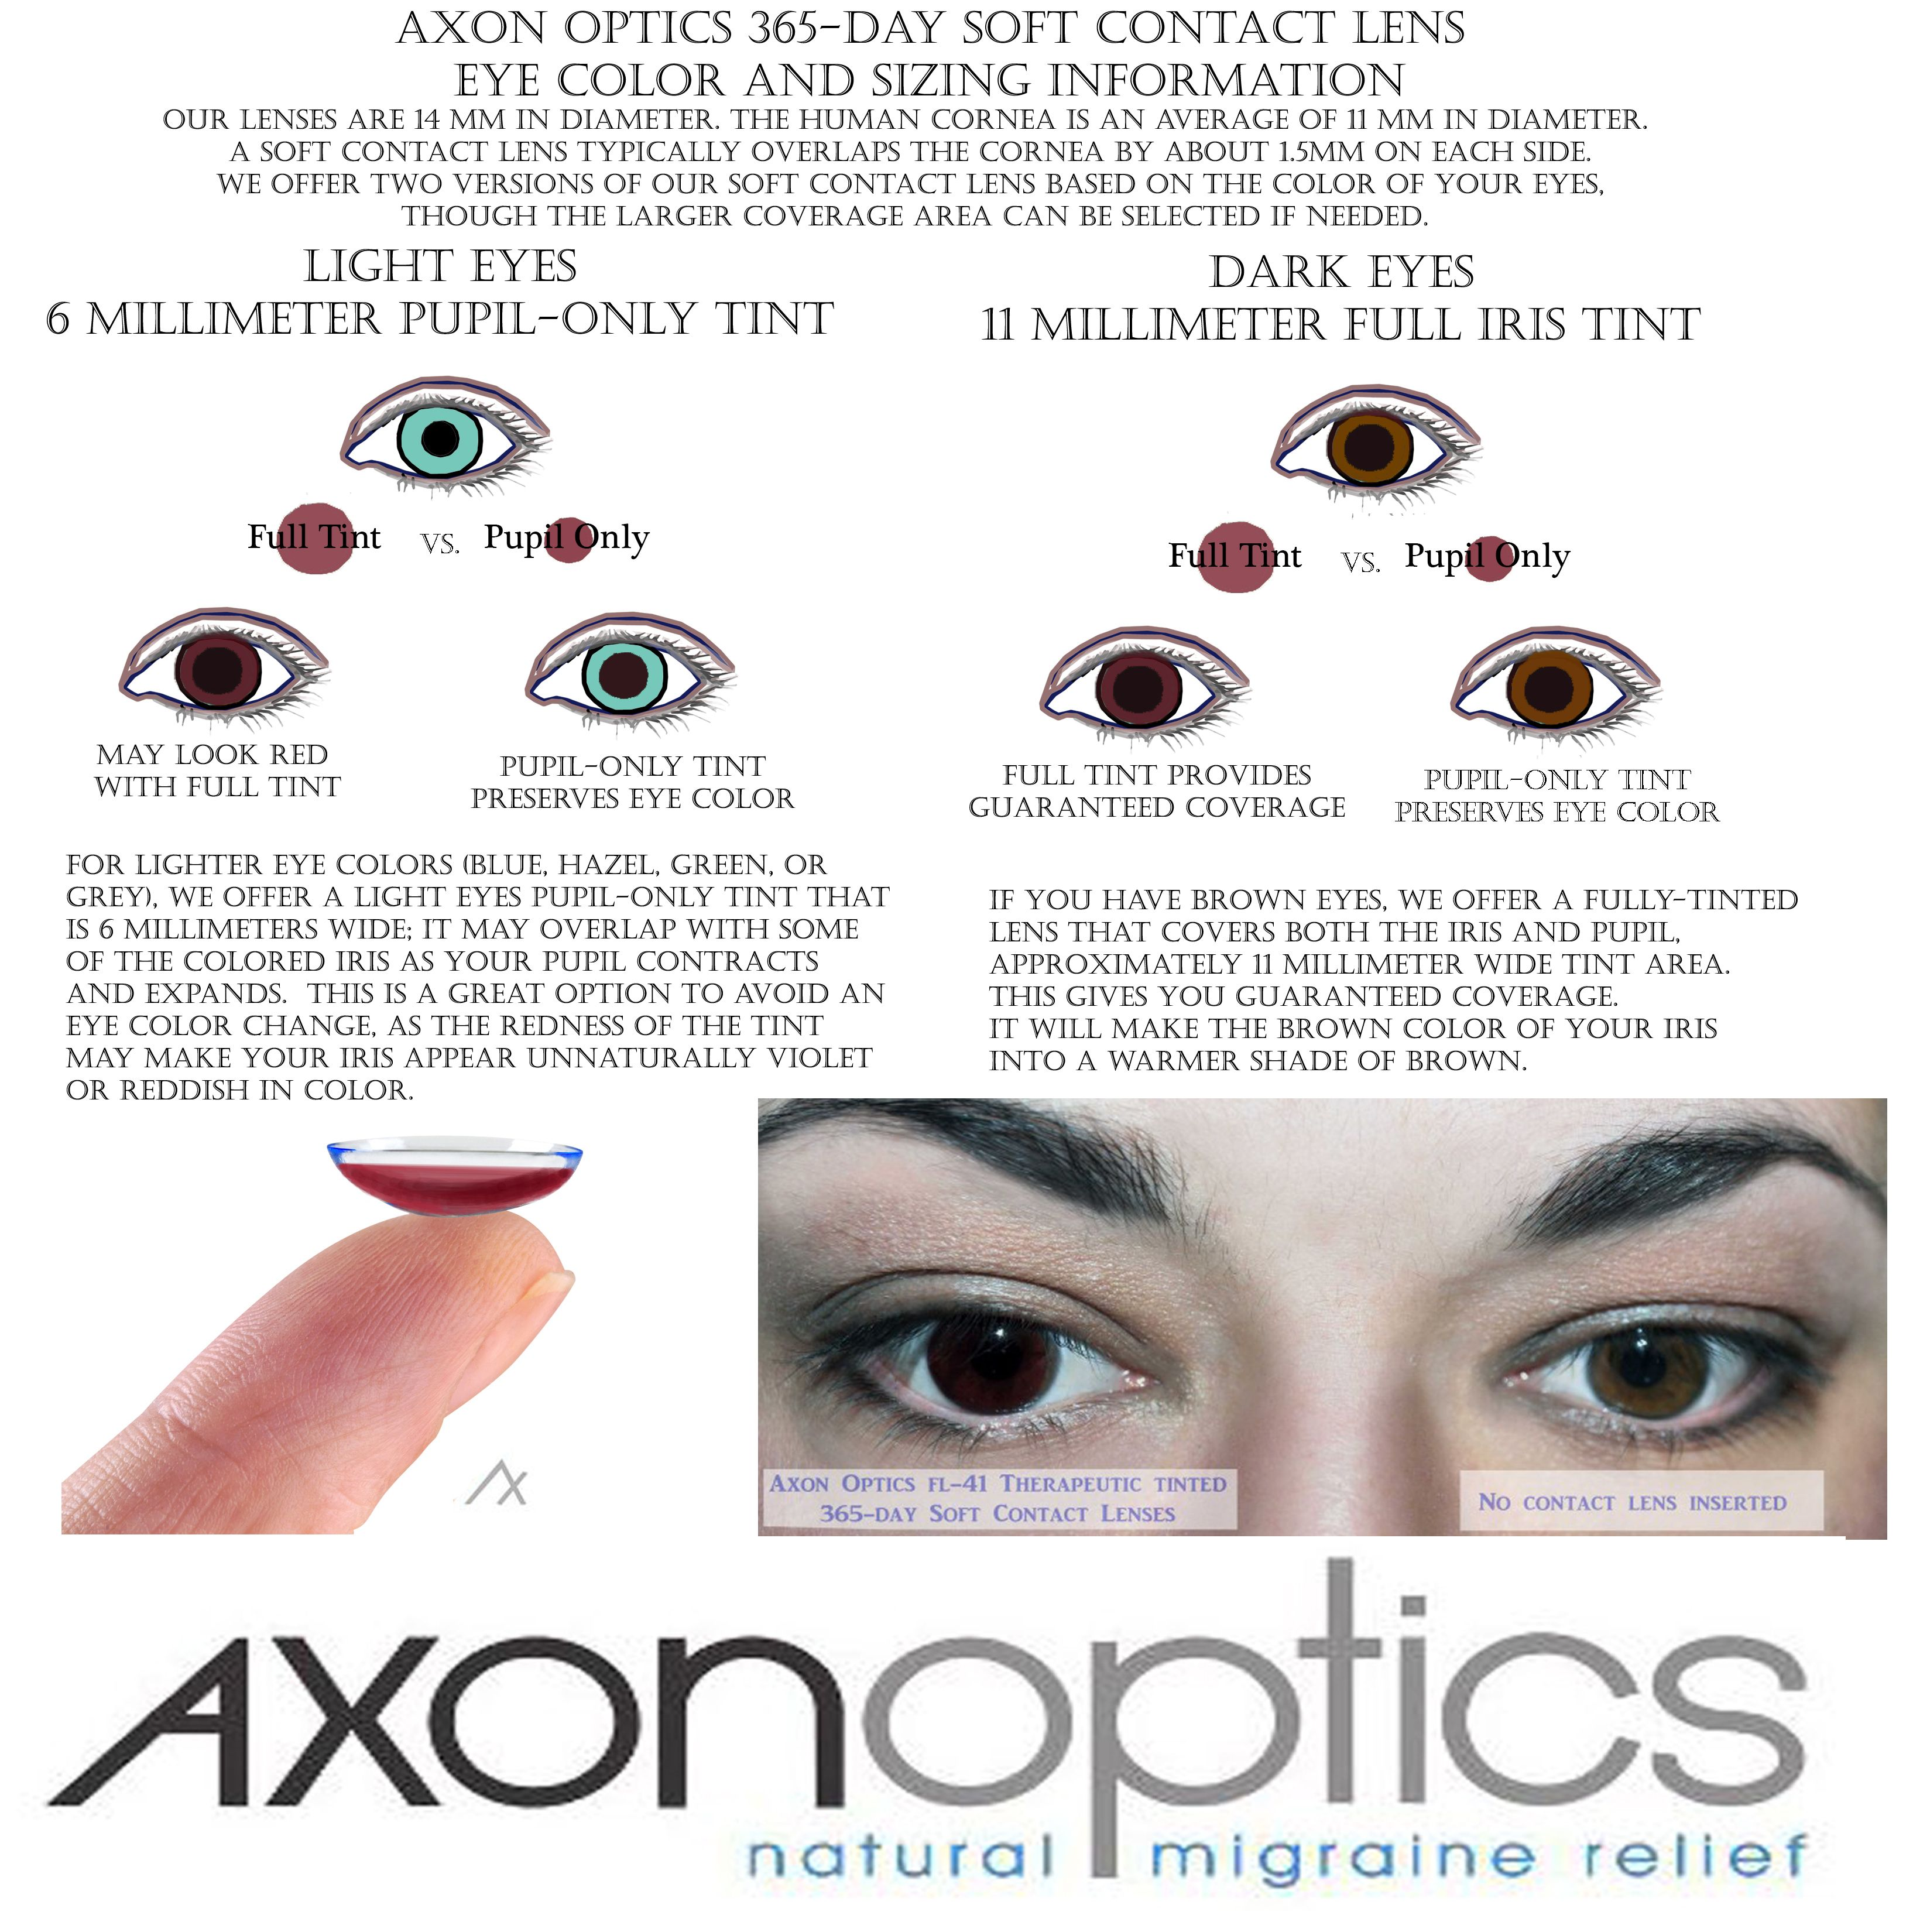 Looking To Receive The Benefits Of Our Therapeutic Lenses Without The Frames For The First Soft Contact Lenses Contact Lenses For Astigmatism Colour Your Eyes